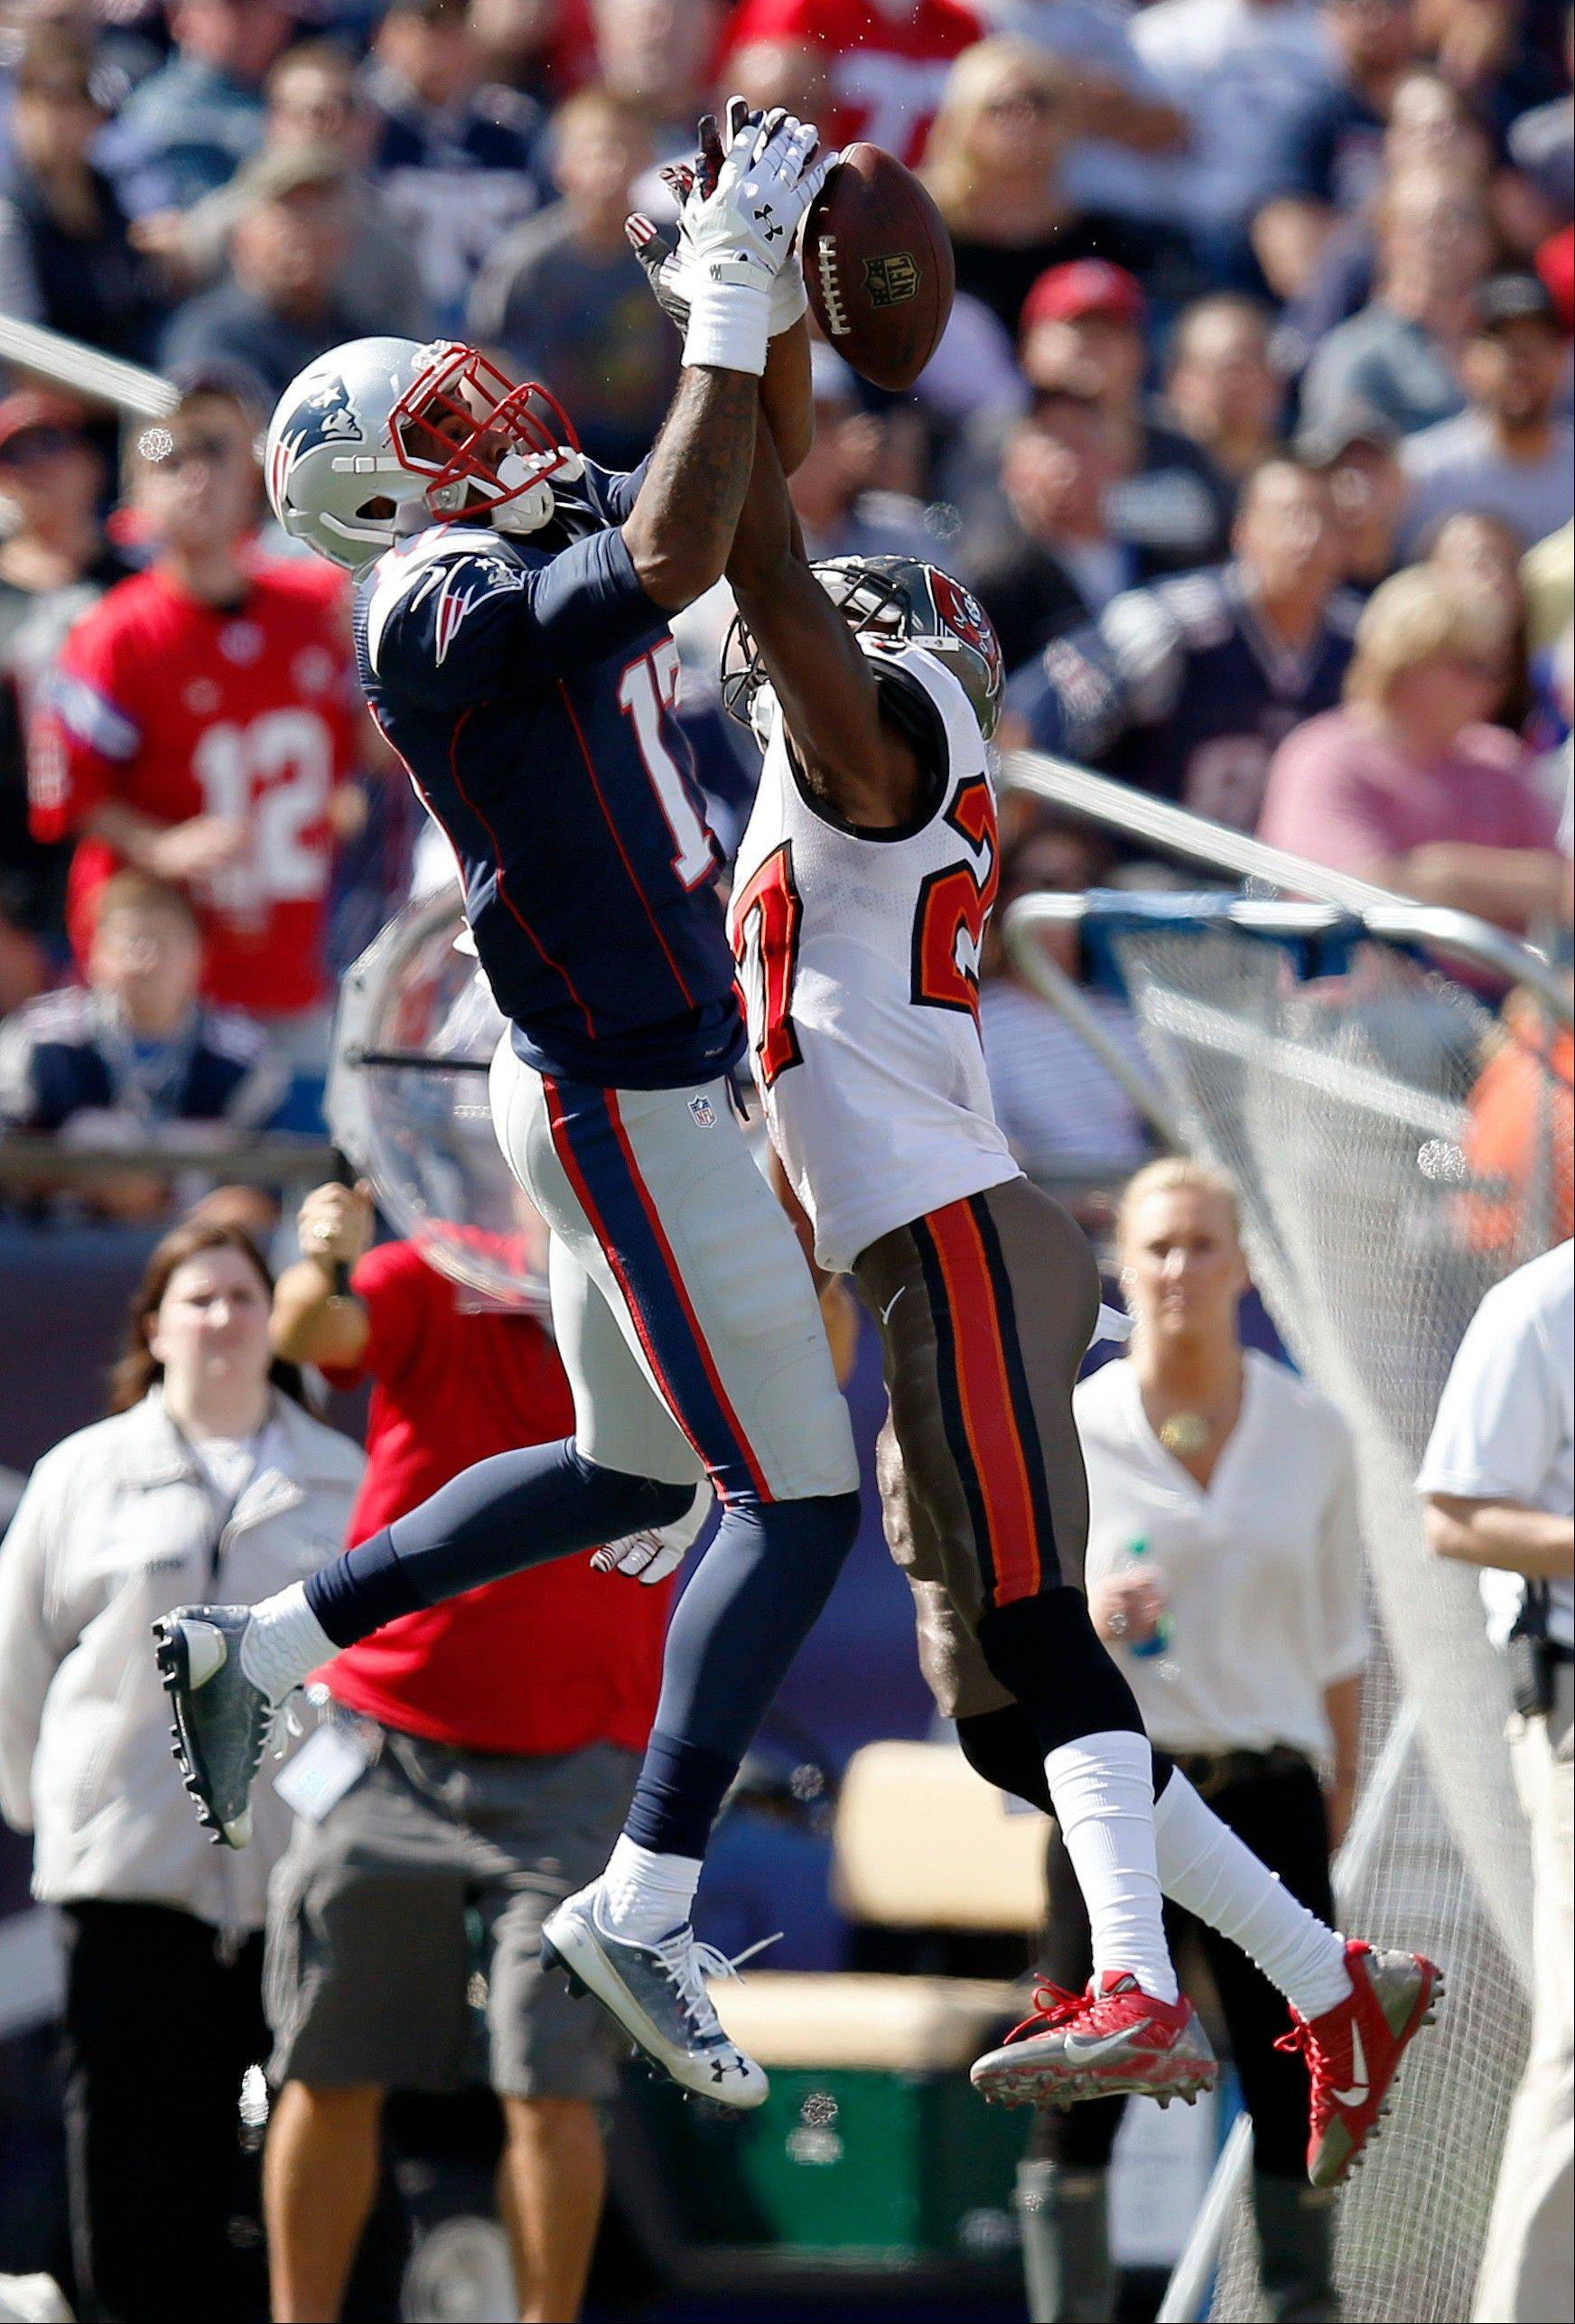 Tampa Bay Buccaneers cornerback Johnthan Banks (27) breaks up a pass intended for New England Patriots wide receiver Aaron Dobson (17) in the first half of an NFL football game Sunday, Sept. 22, 2013, in Foxborough, Mass.